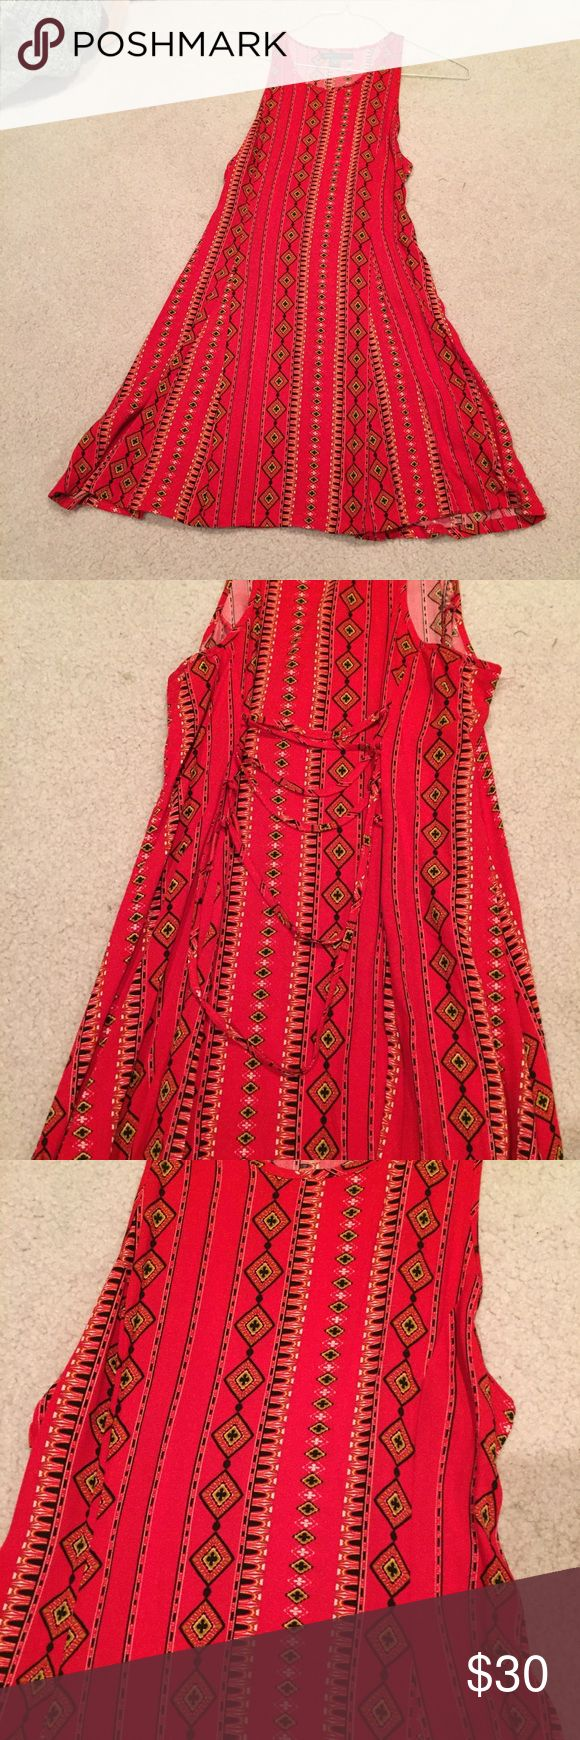 Kendall & Kylie dress Kendall & Kylie red patterns dress, laces up the back! Size small, never been worn. In perfect condition. Kendall & Kylie Dresses Mini